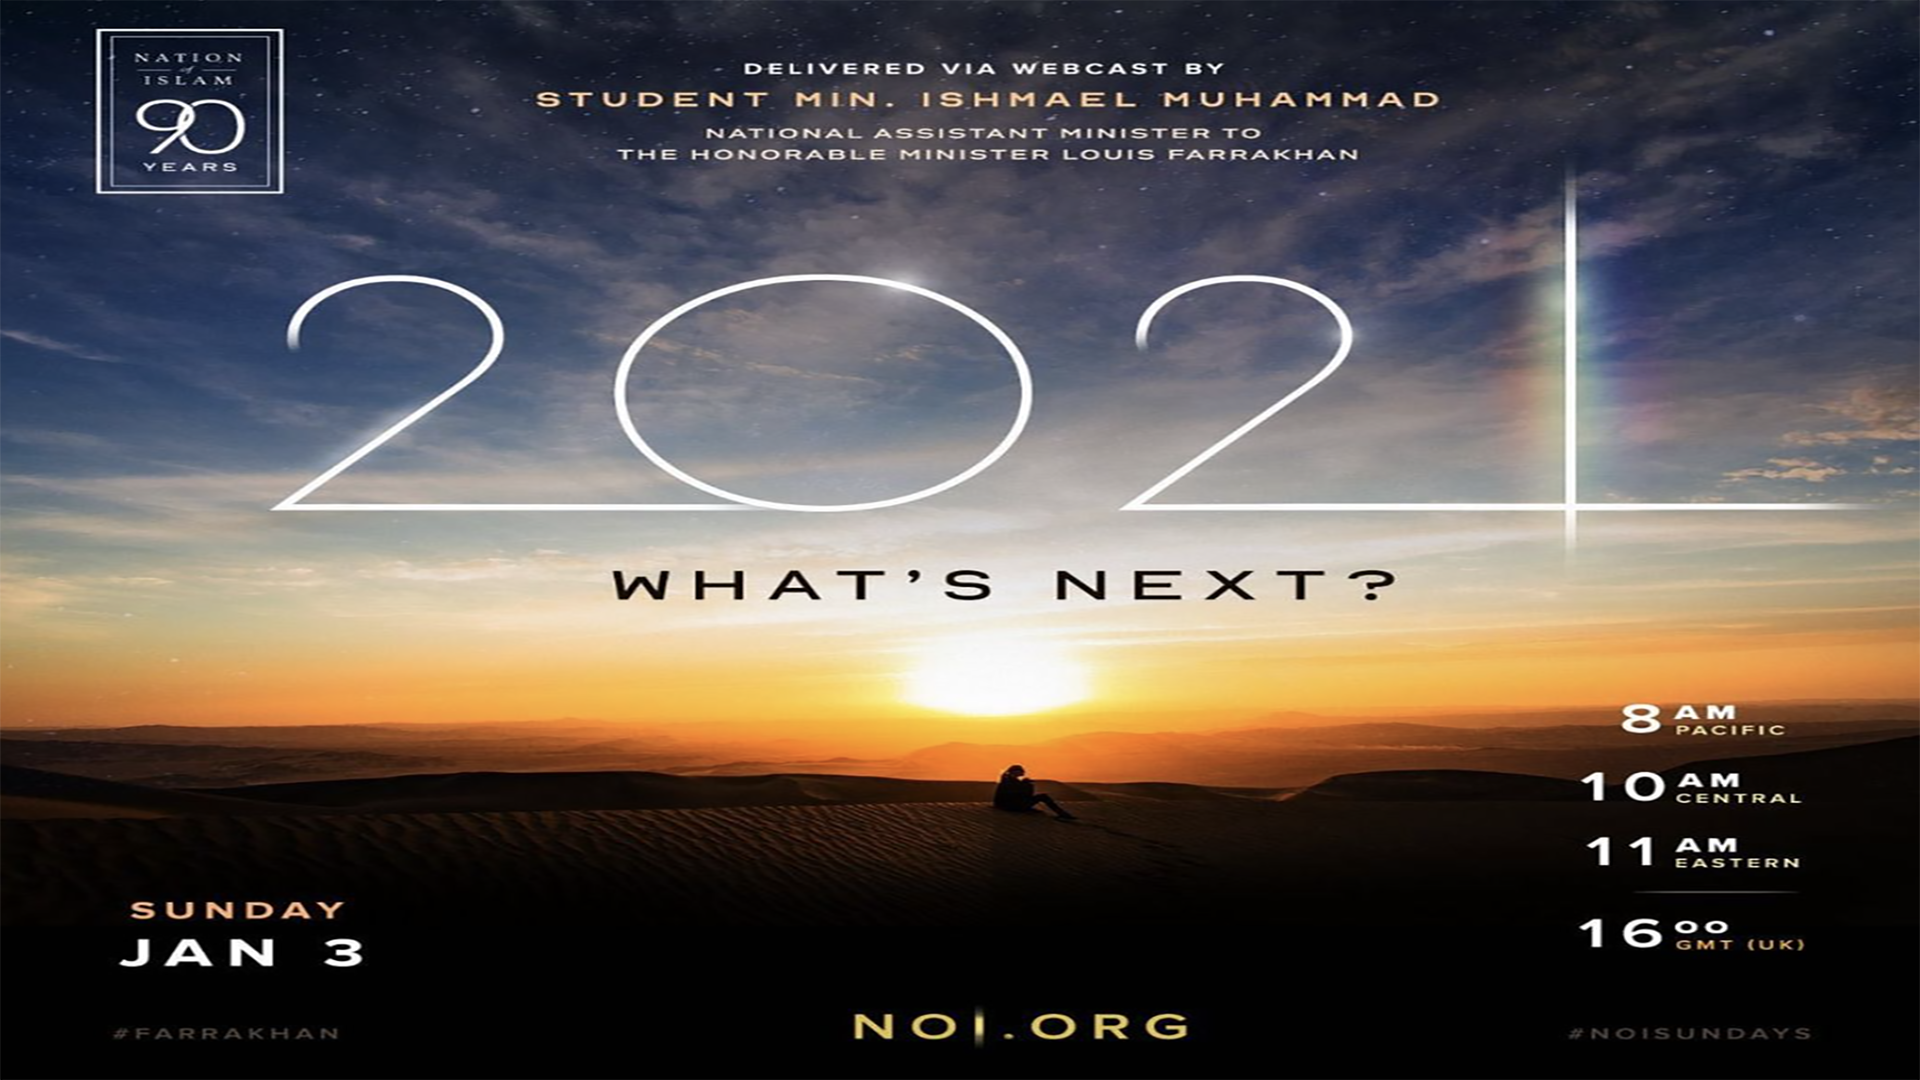 2021: What's Next?